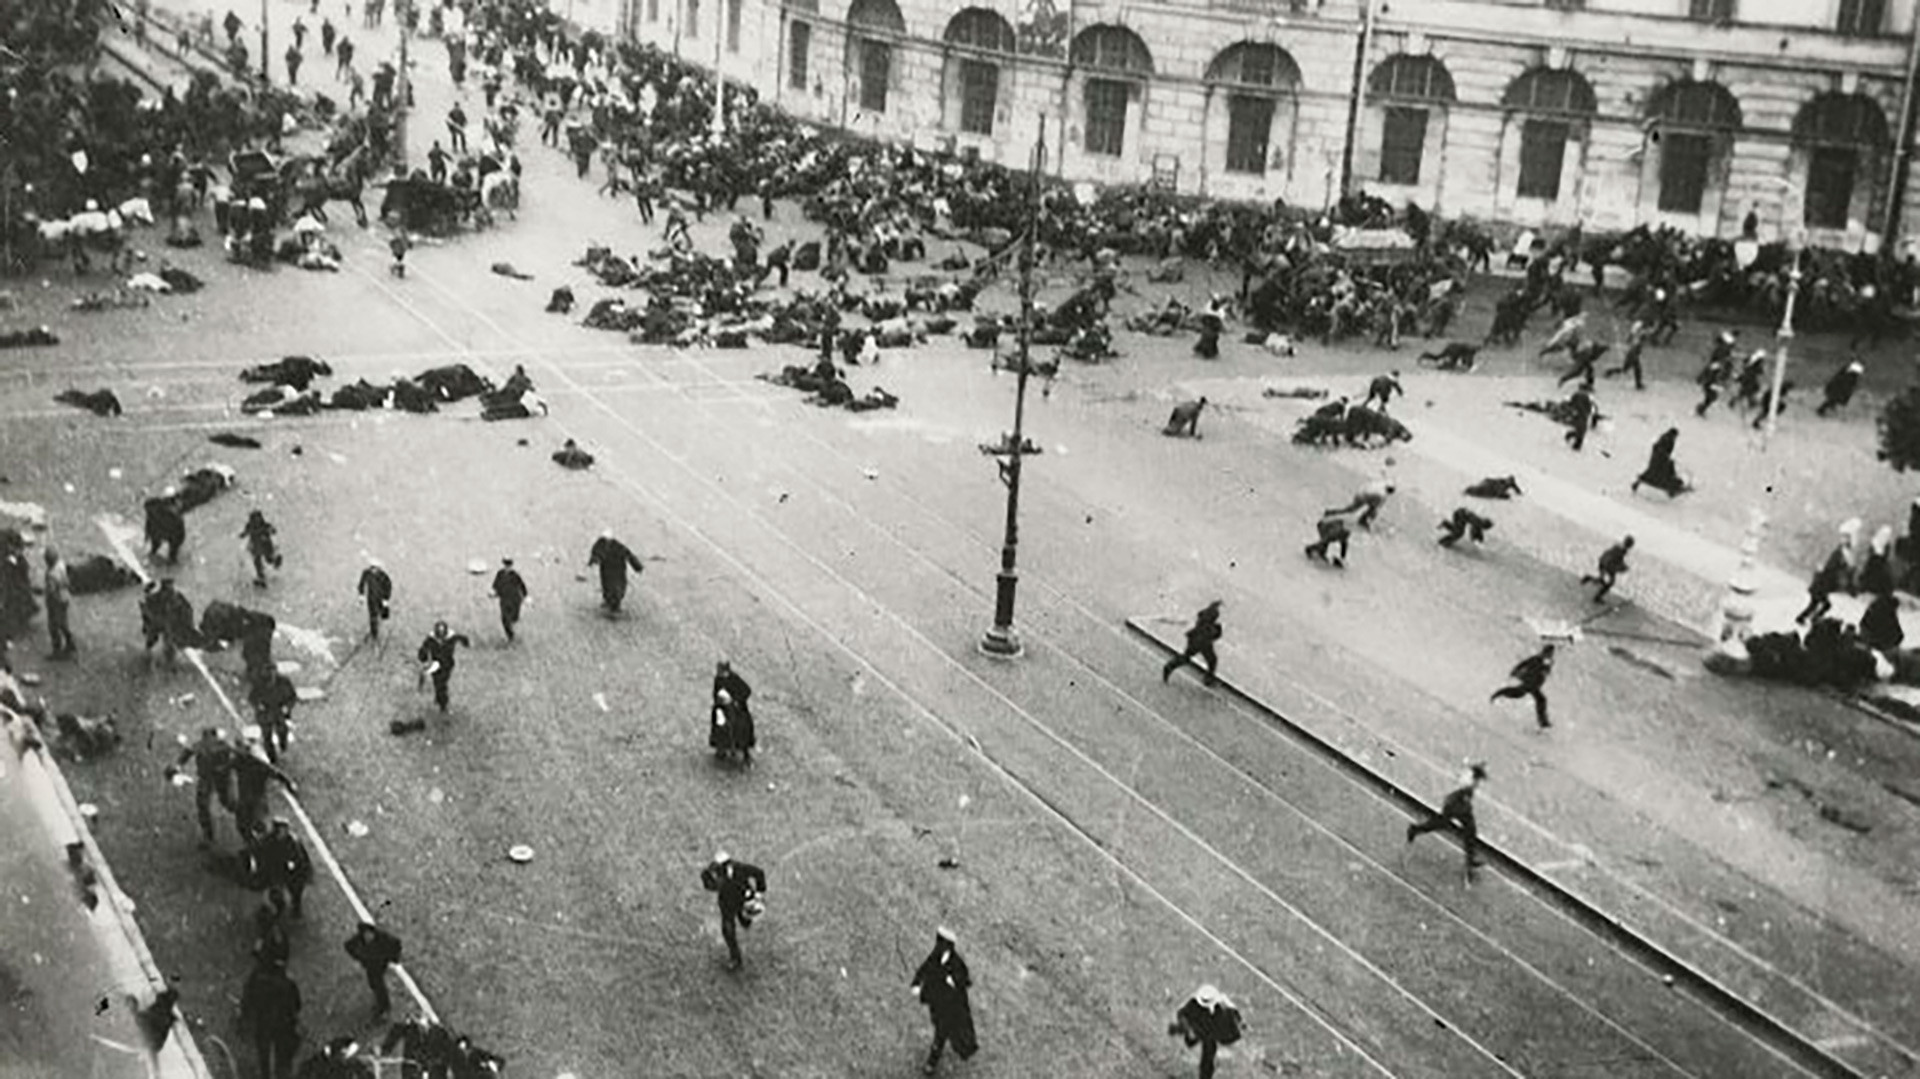 The Provisional Government's troops shoot into a peace demonstration on Nevsky Prospect